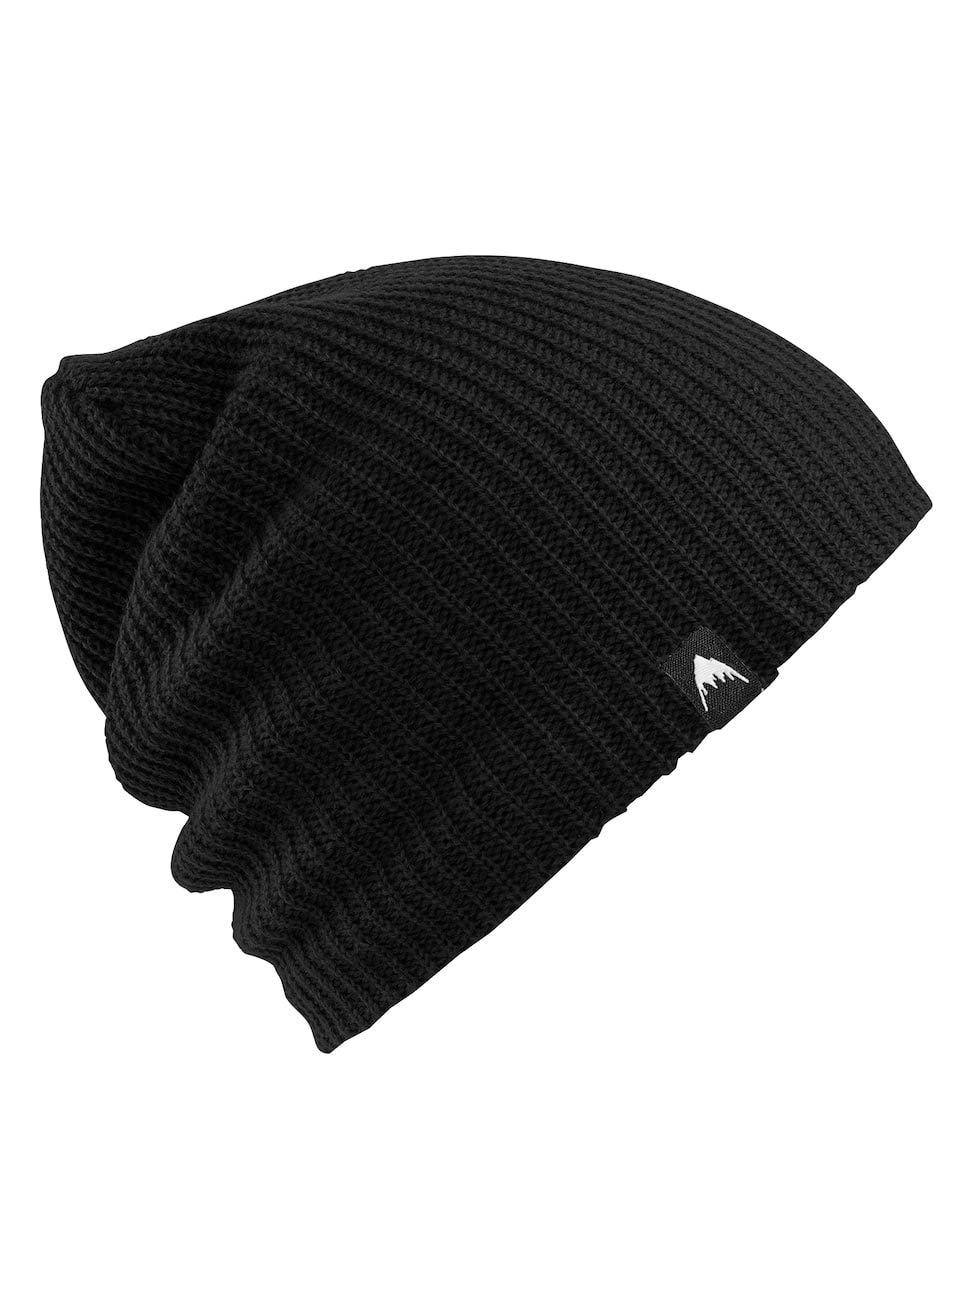 11a17d9aa91 Burton Men s All All Day Long Beanie